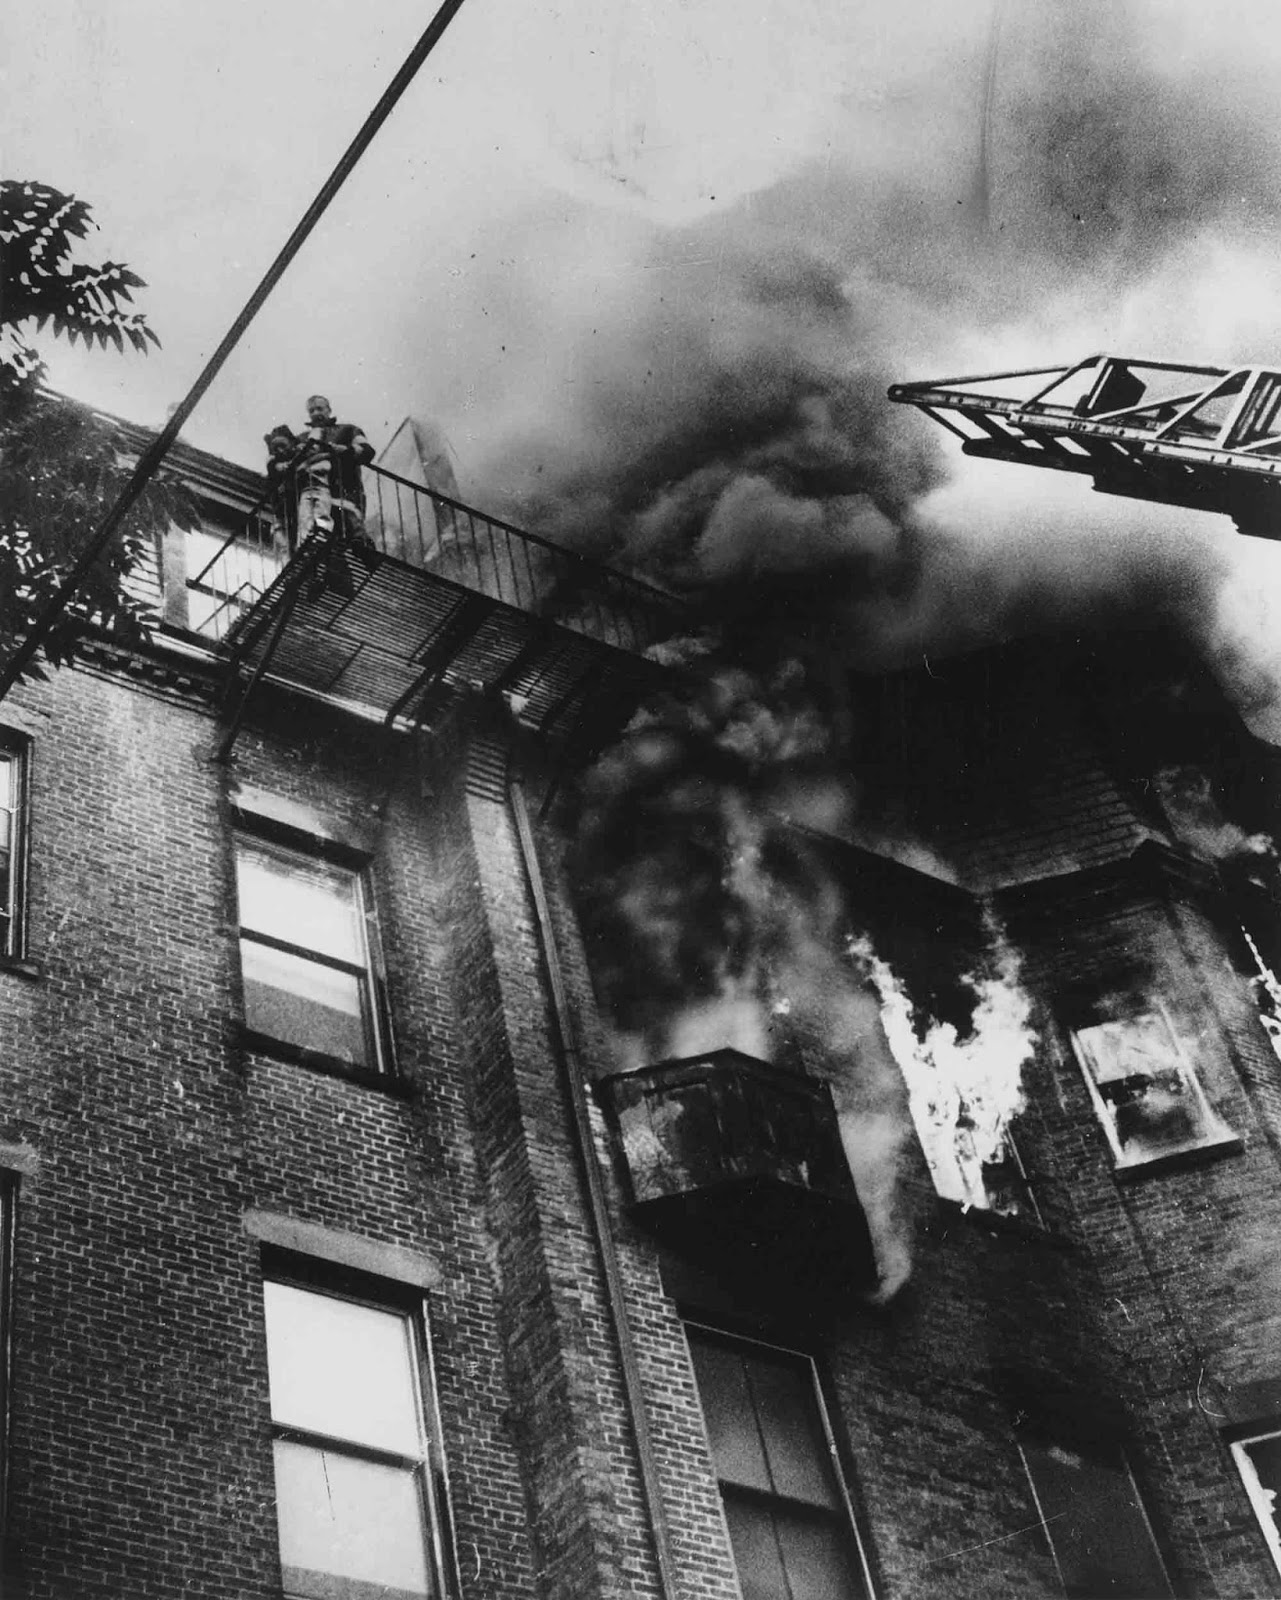 The tillerman of the first fire engine to arrive at the scene, Robert O'Neill, asked Bryant to lift the toddler Jones to him on the roof, but Bryant was unable to do so and O'Neill jumped down to help before the ladder could reach them.